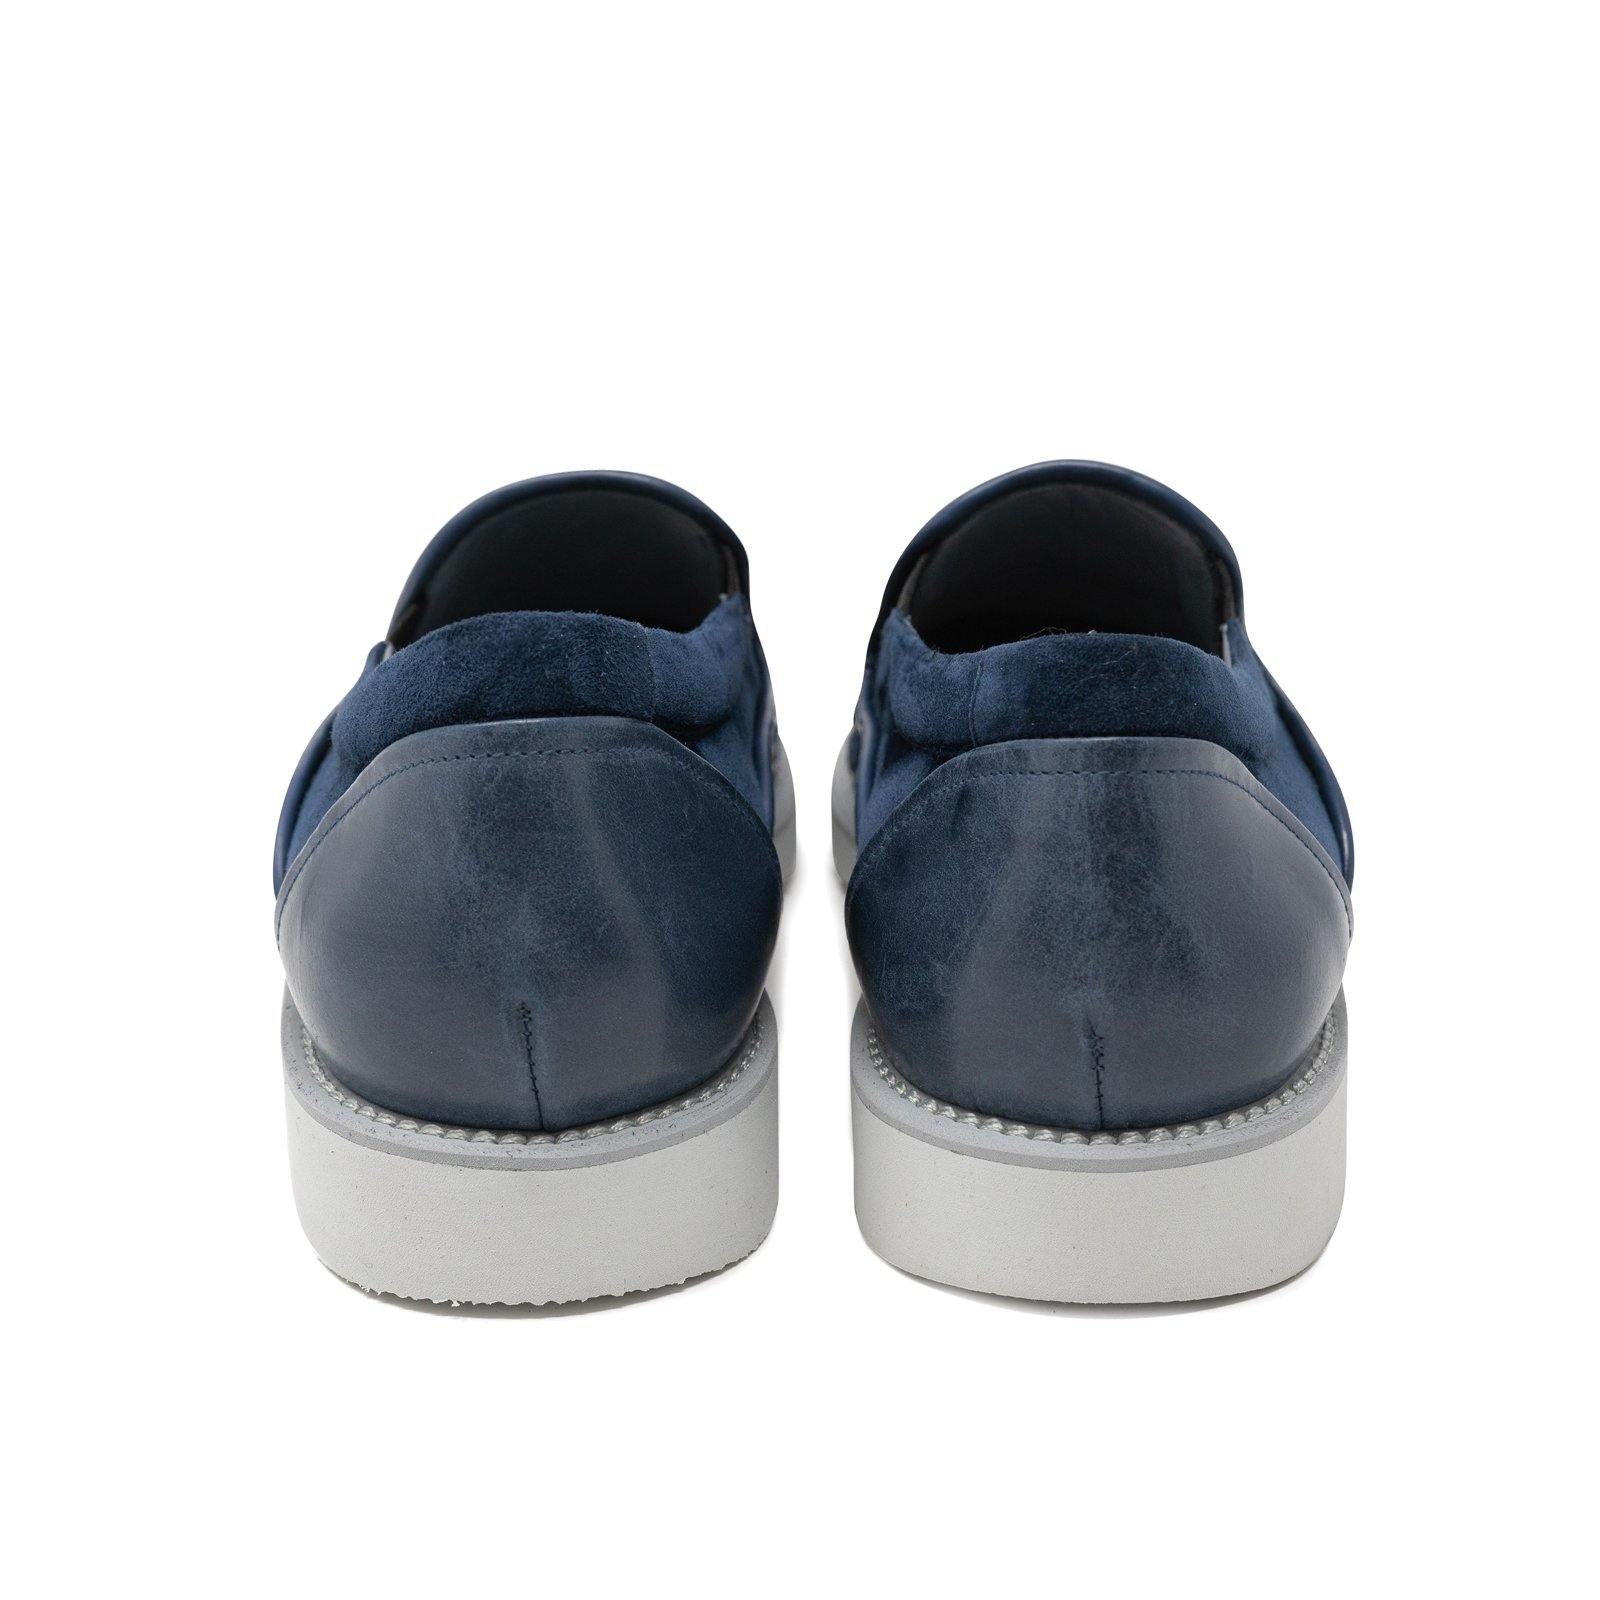 Men Slip On Leather Shoes in Blue Suede